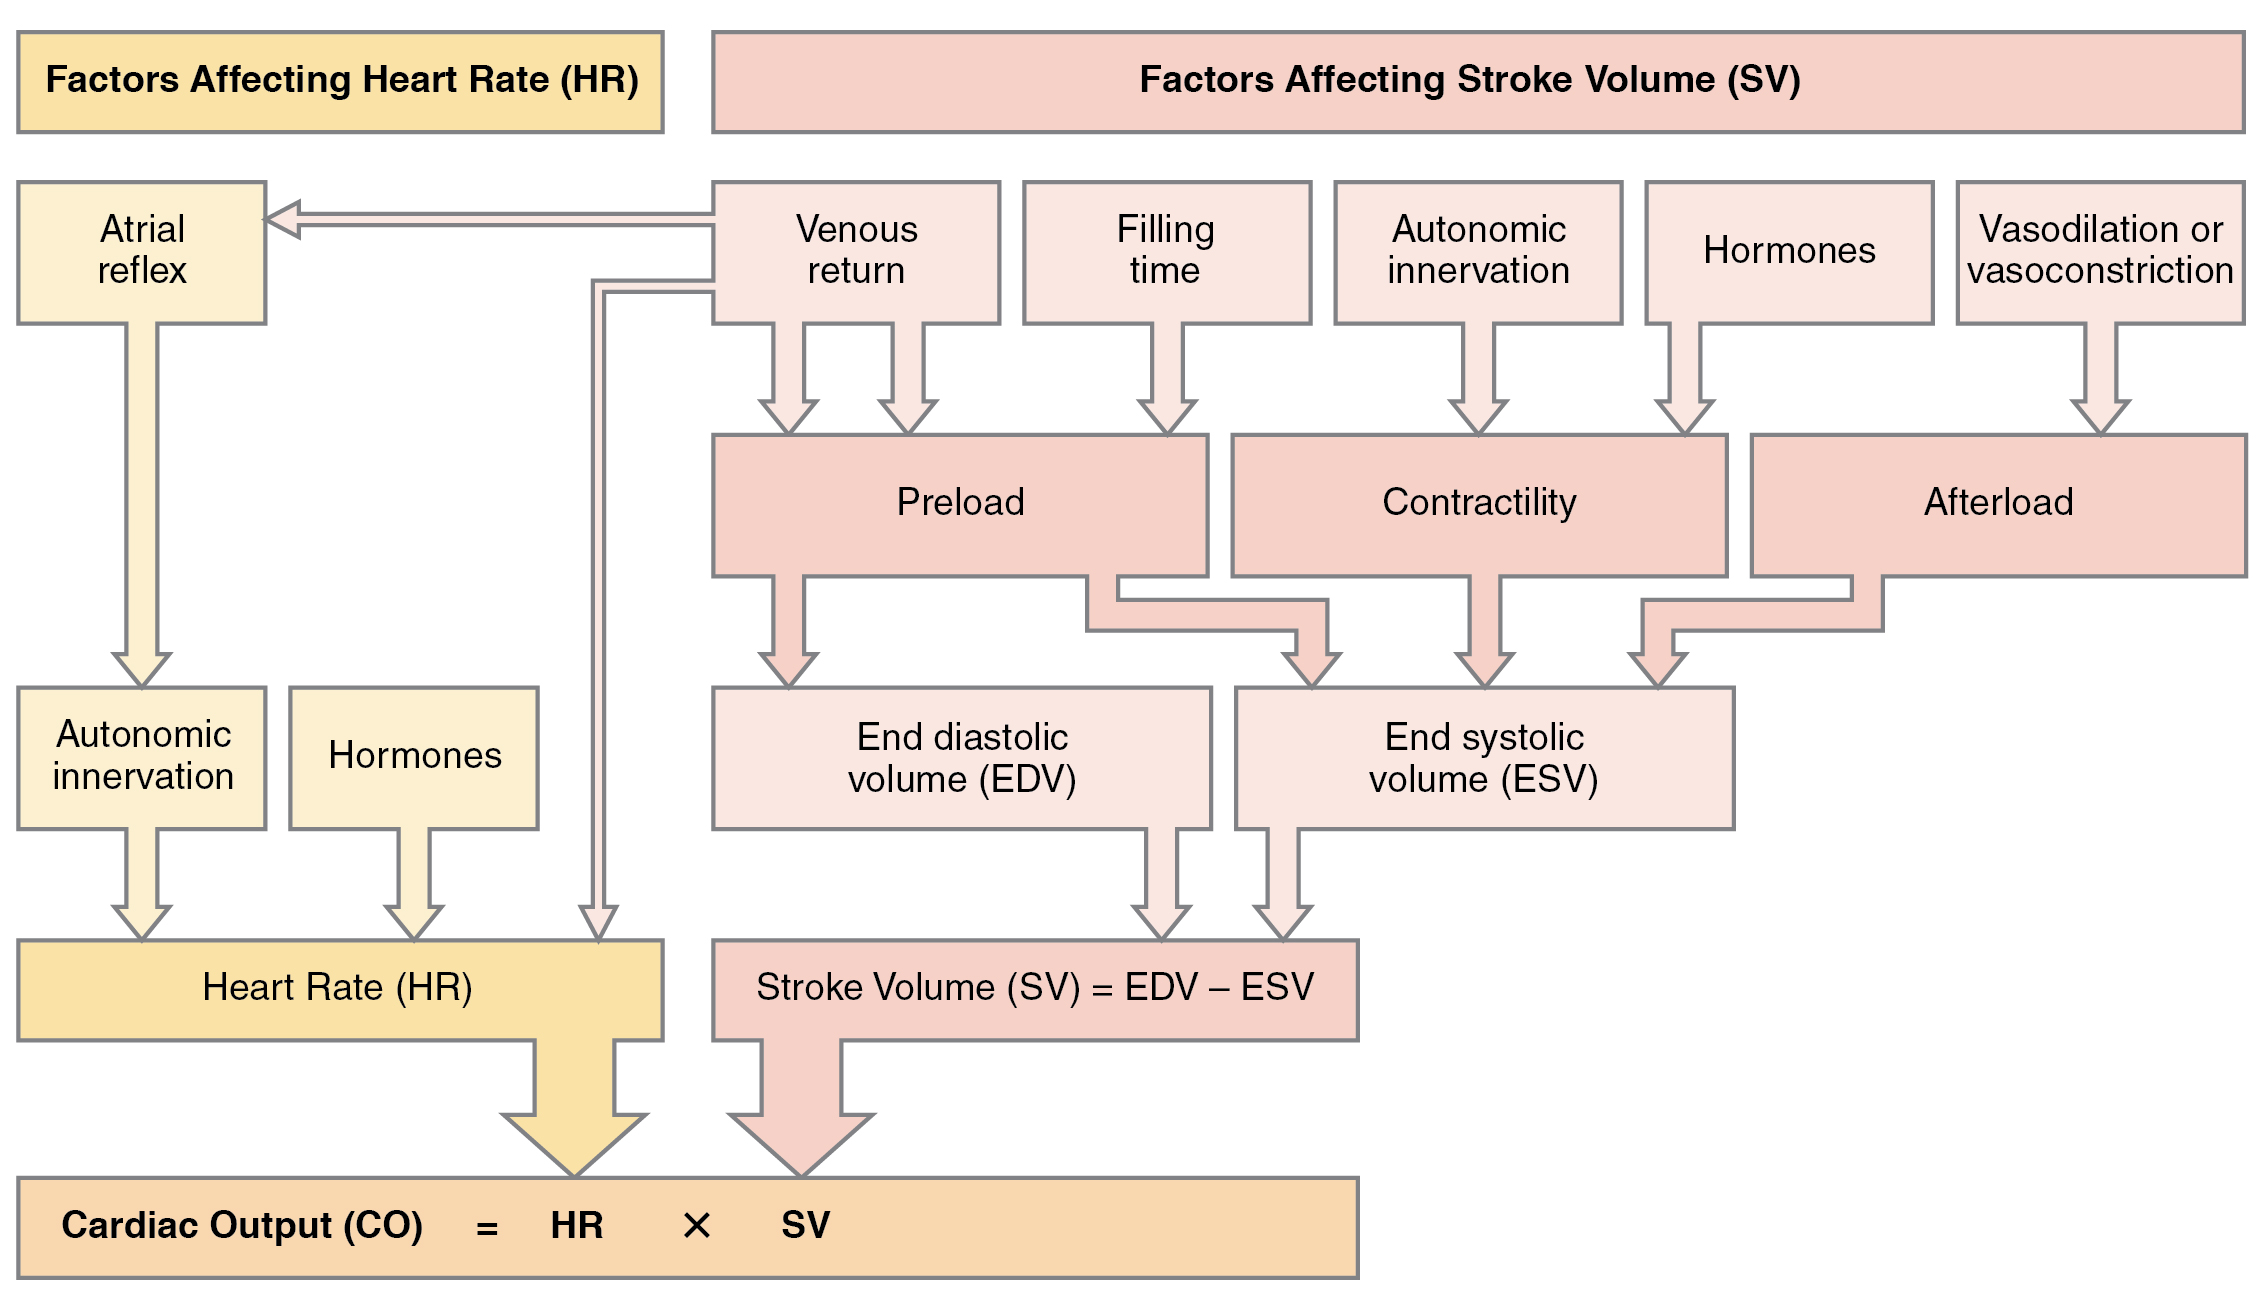 This flowchart lists all the important factors that affect cardiac output.